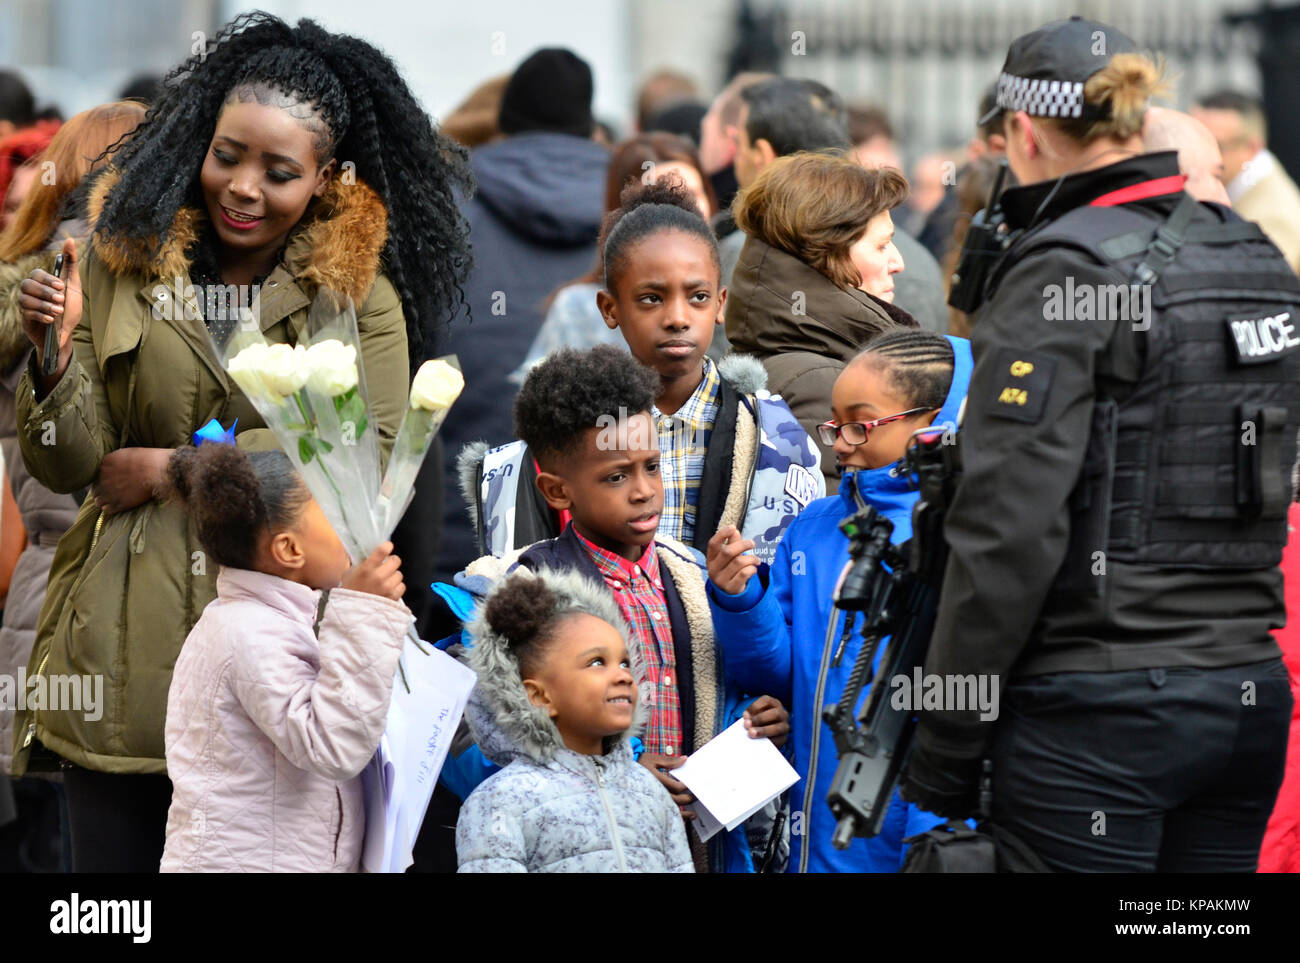 London, UK. 14th Dec, 2017. Survivors, families and members of the Royal Families attend a service at St Pauls, - Stock Image